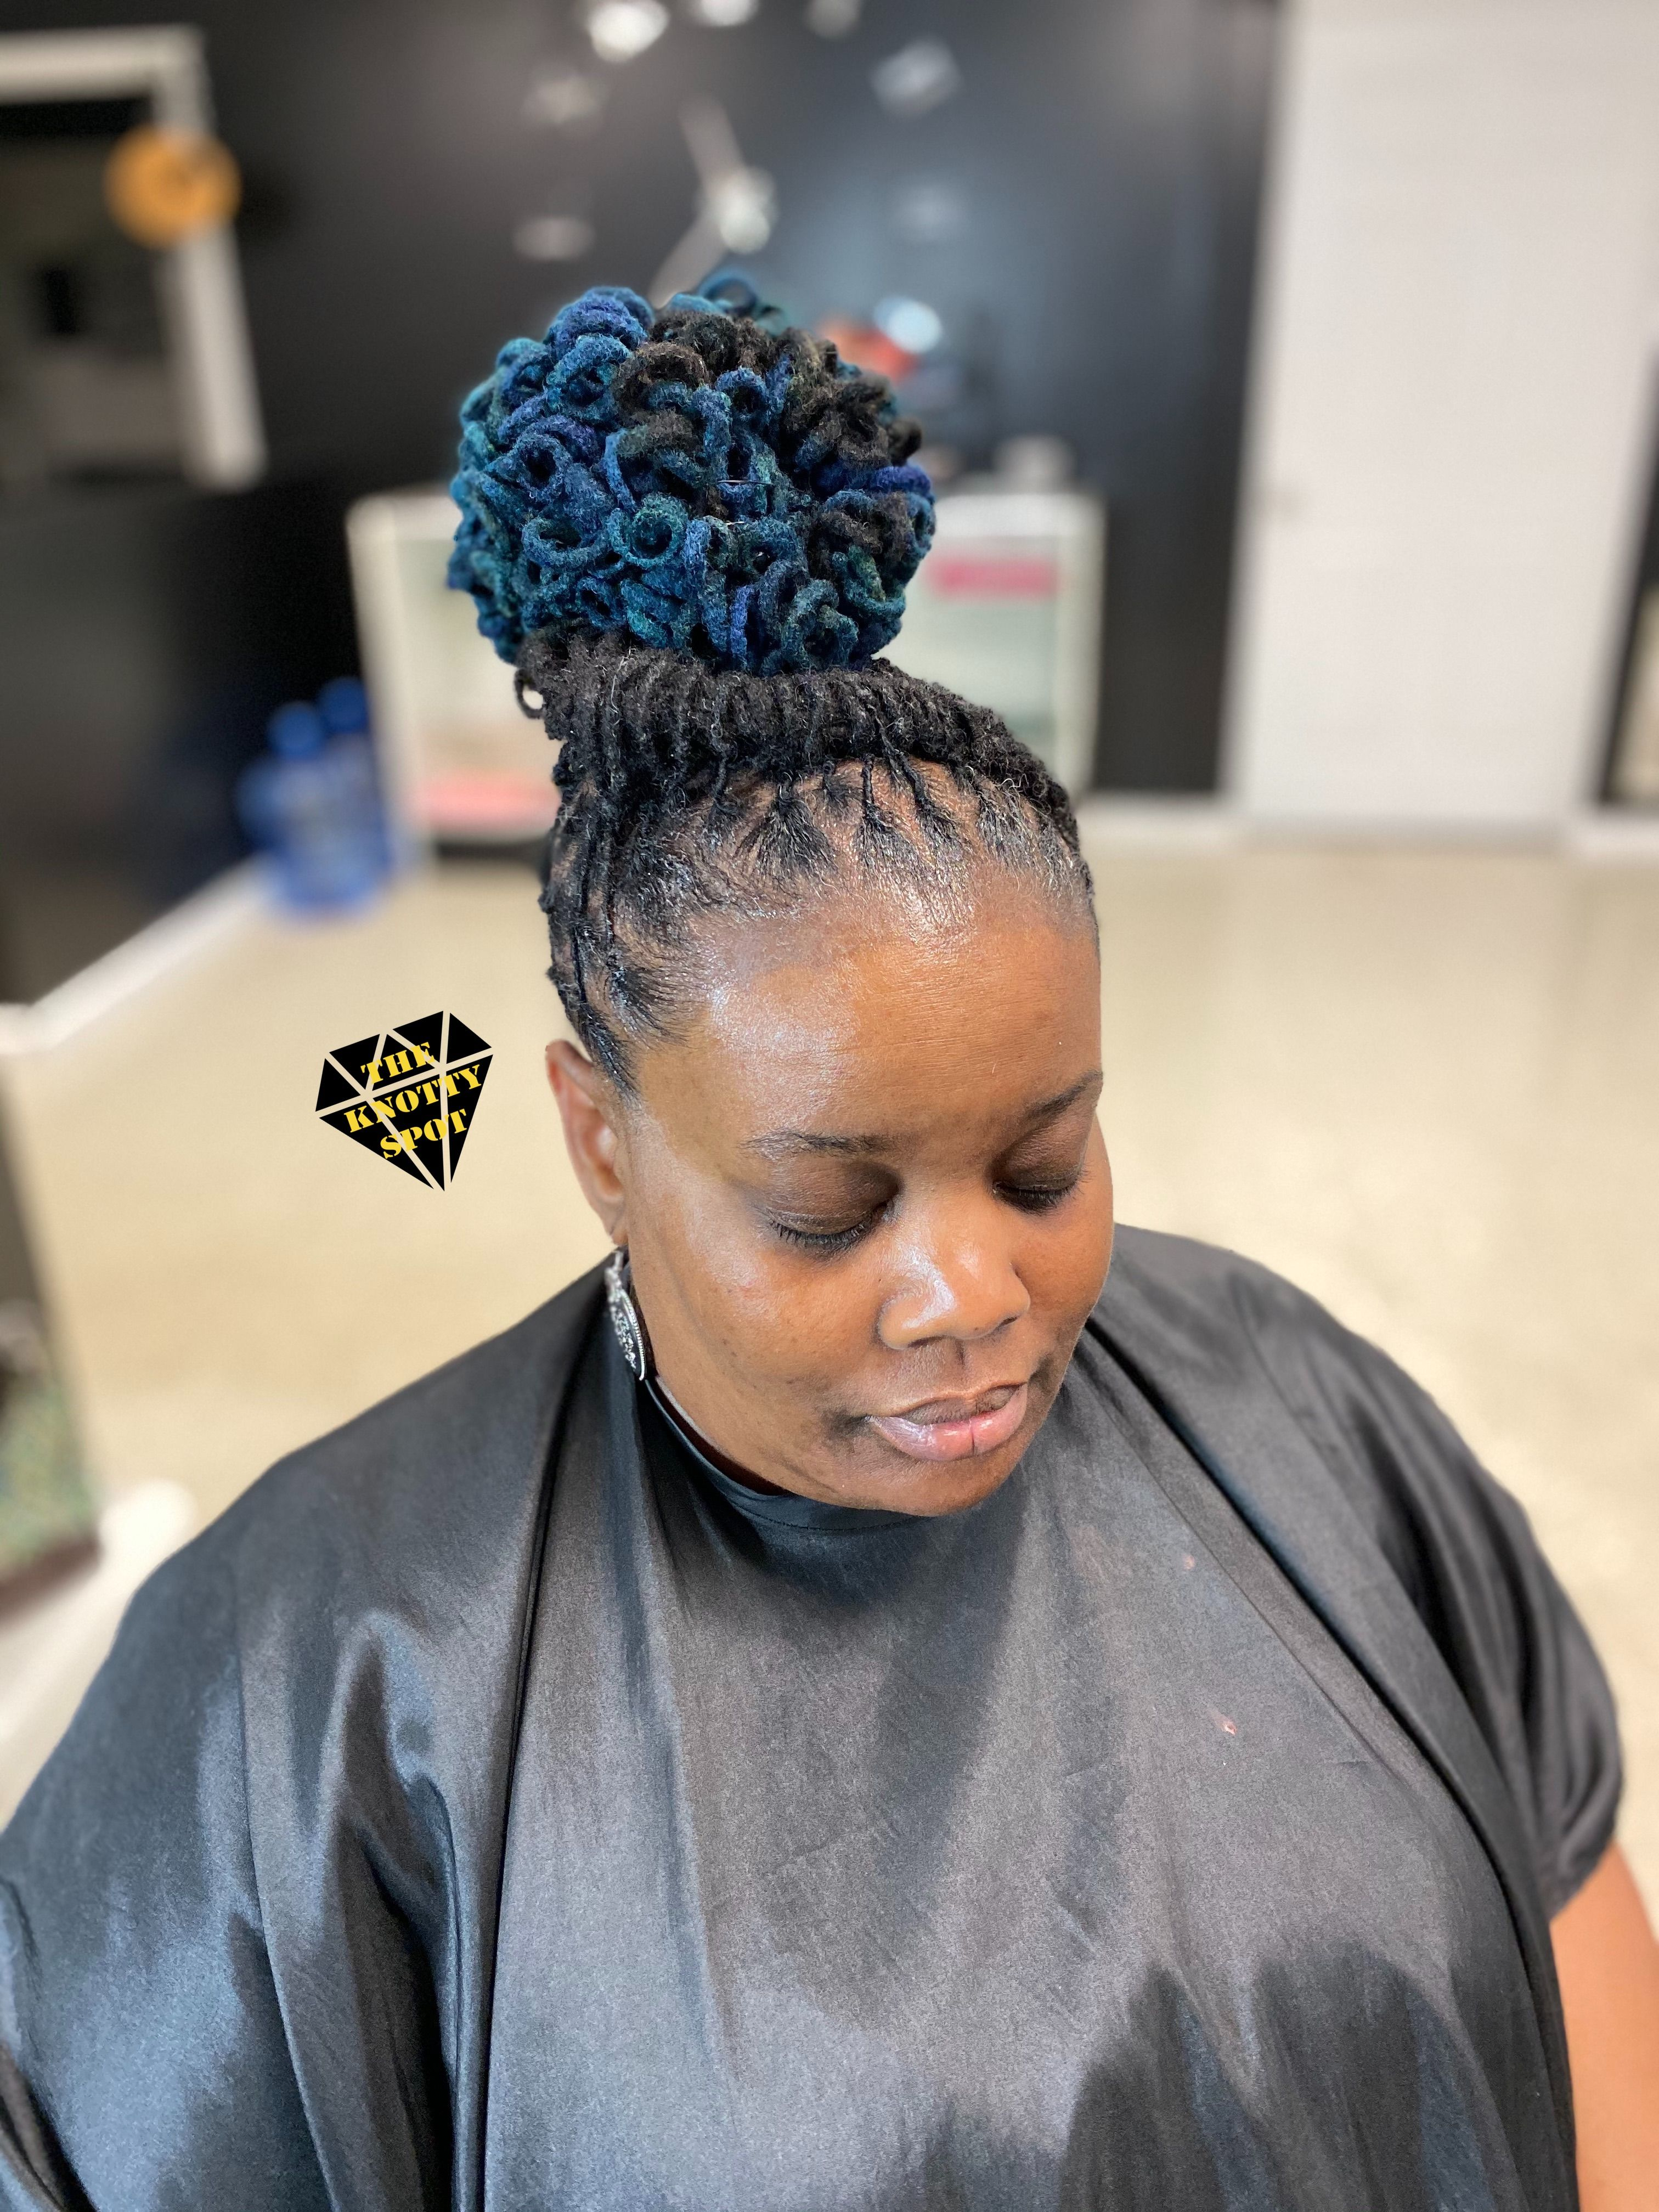 Loc updo loc updo dreadlock hairstyles natural hair color